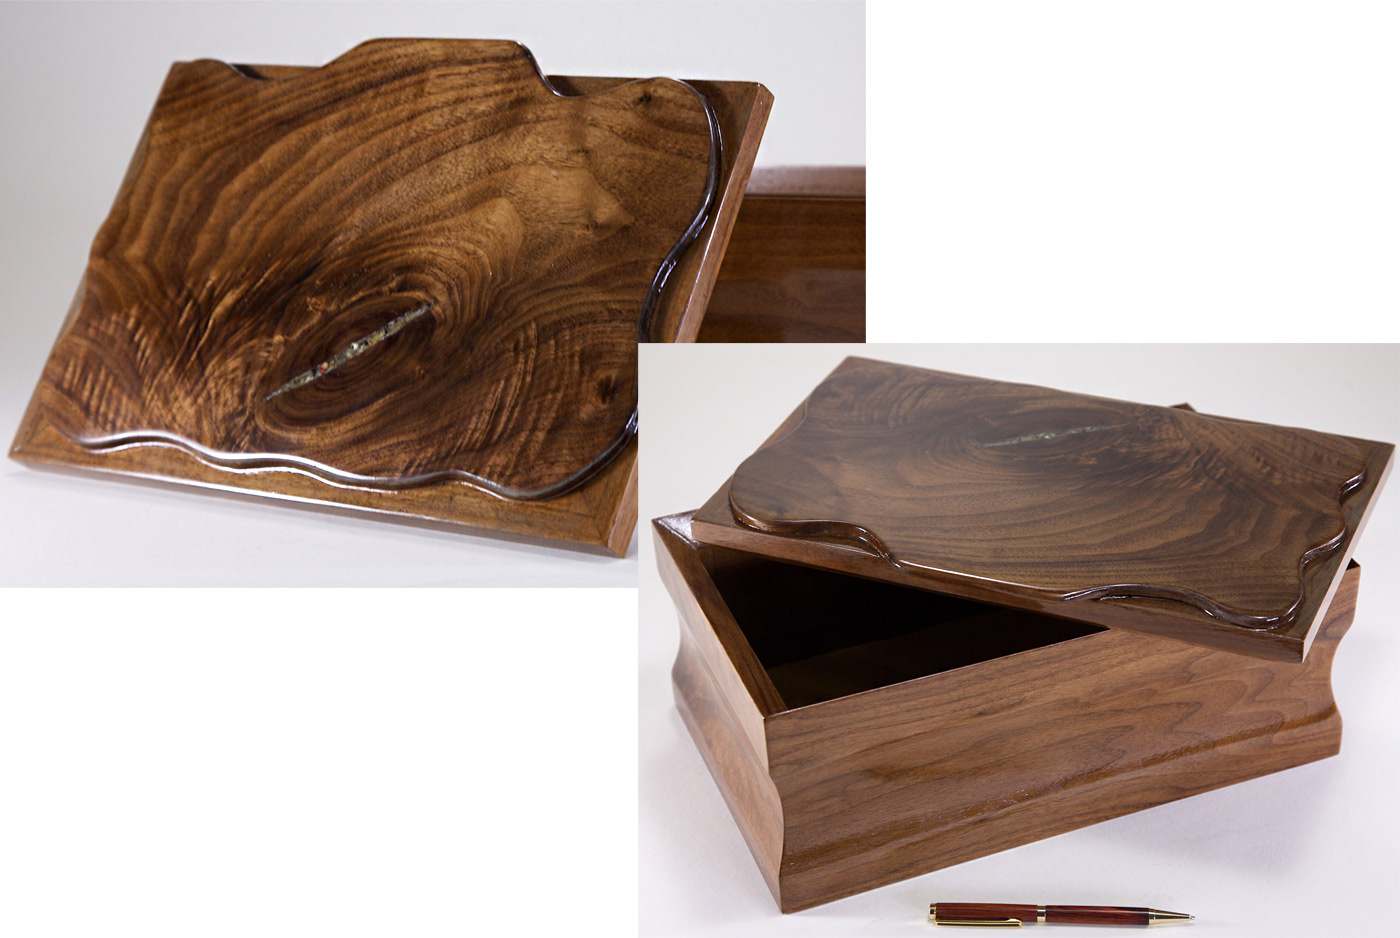 4 Things Woodworkers Should Know About Walnut Lumber